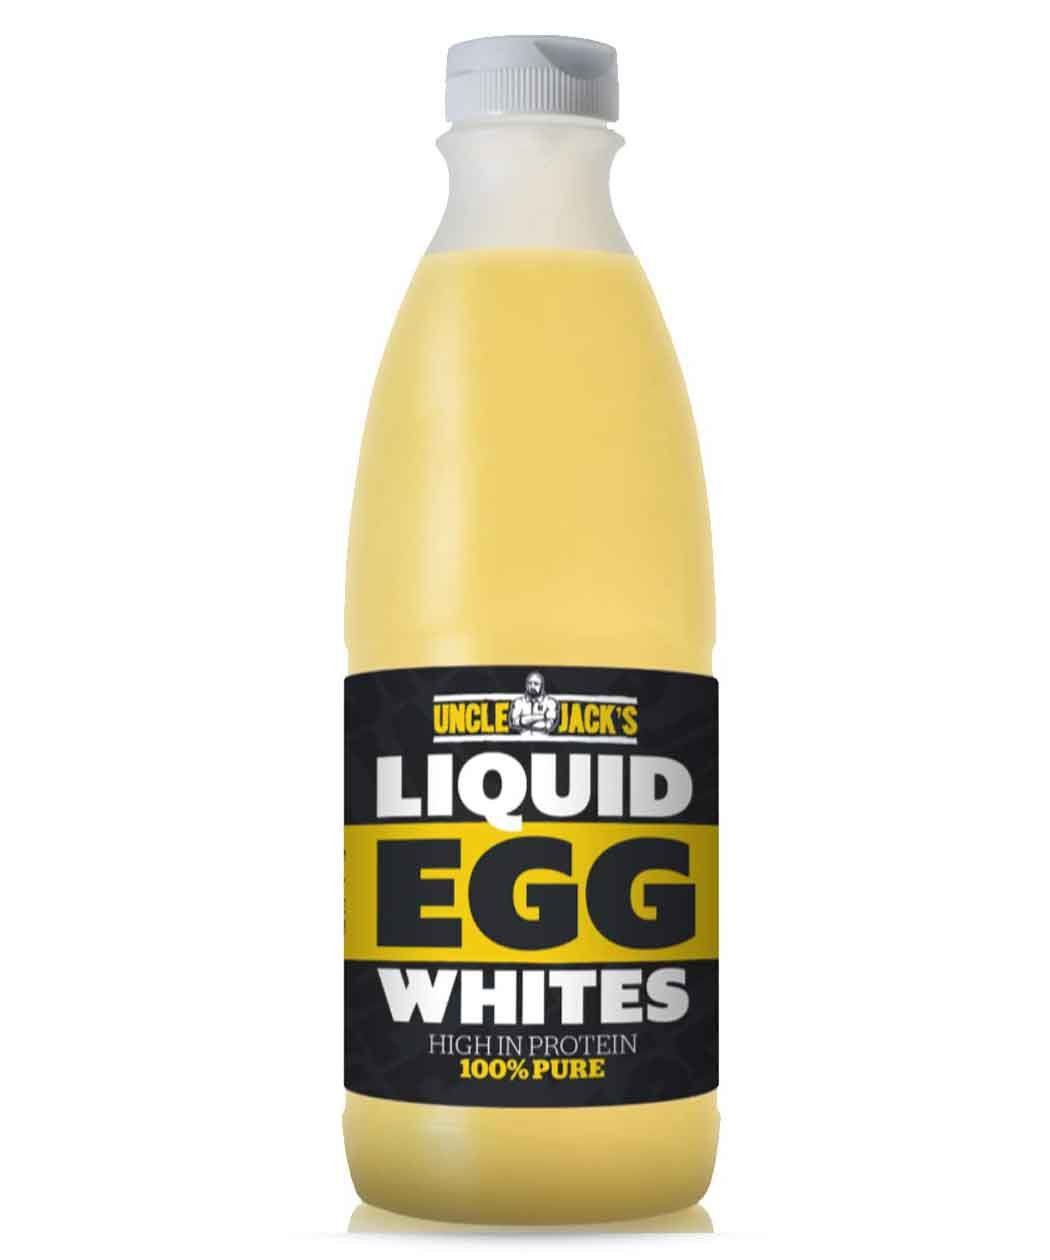 Uncle Jack's Liquid Egg Whites